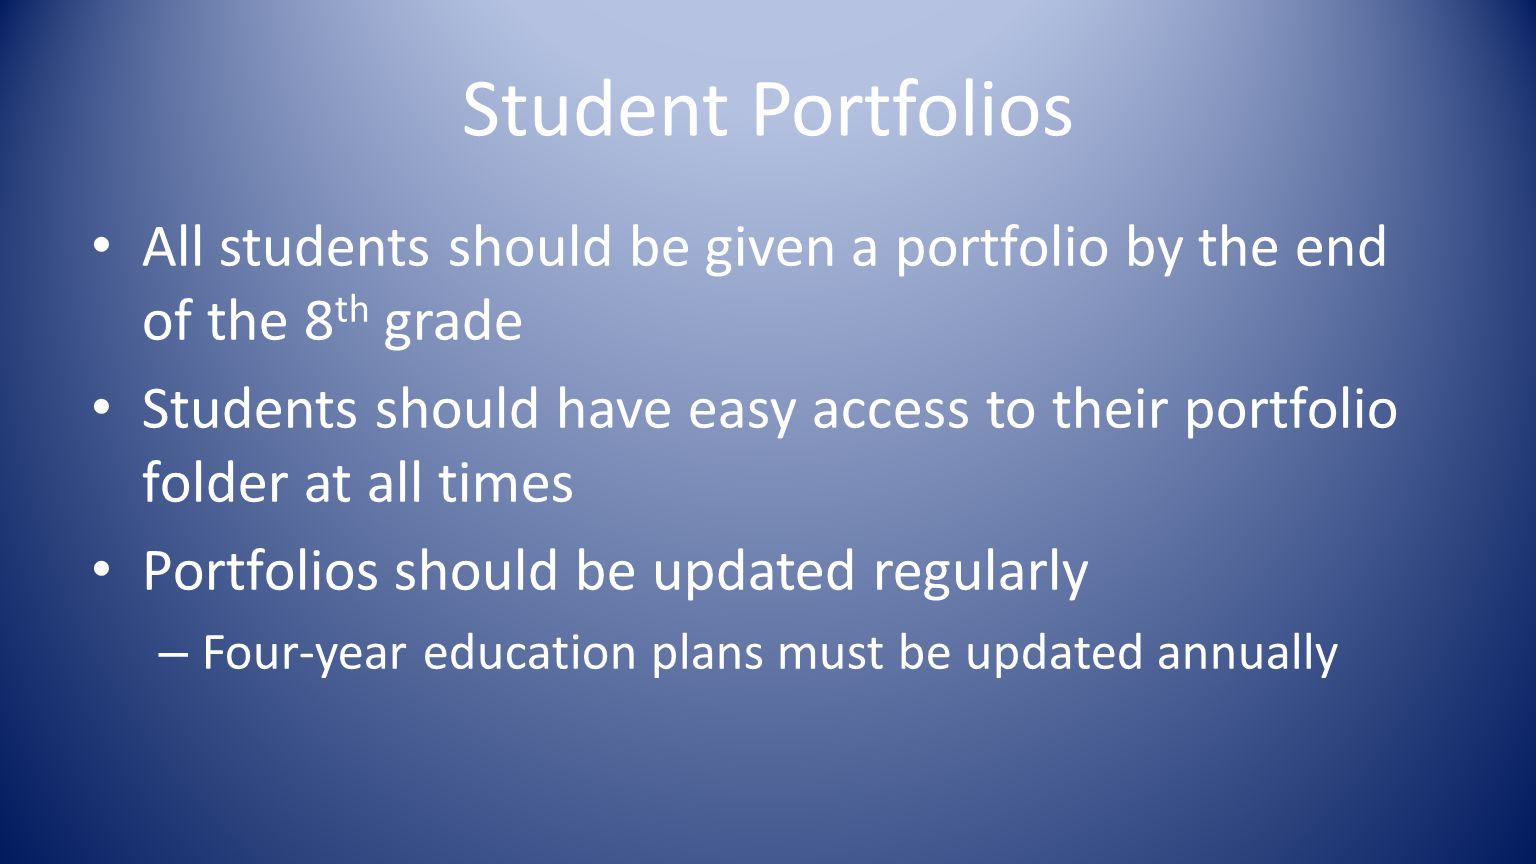 Student Portfolios All students should be given a portfolio by the end of the 8 th grade Students should have easy access to their portfolio folder at all times Portfolios should be updated regularly – Four-year education plans must be updated annually